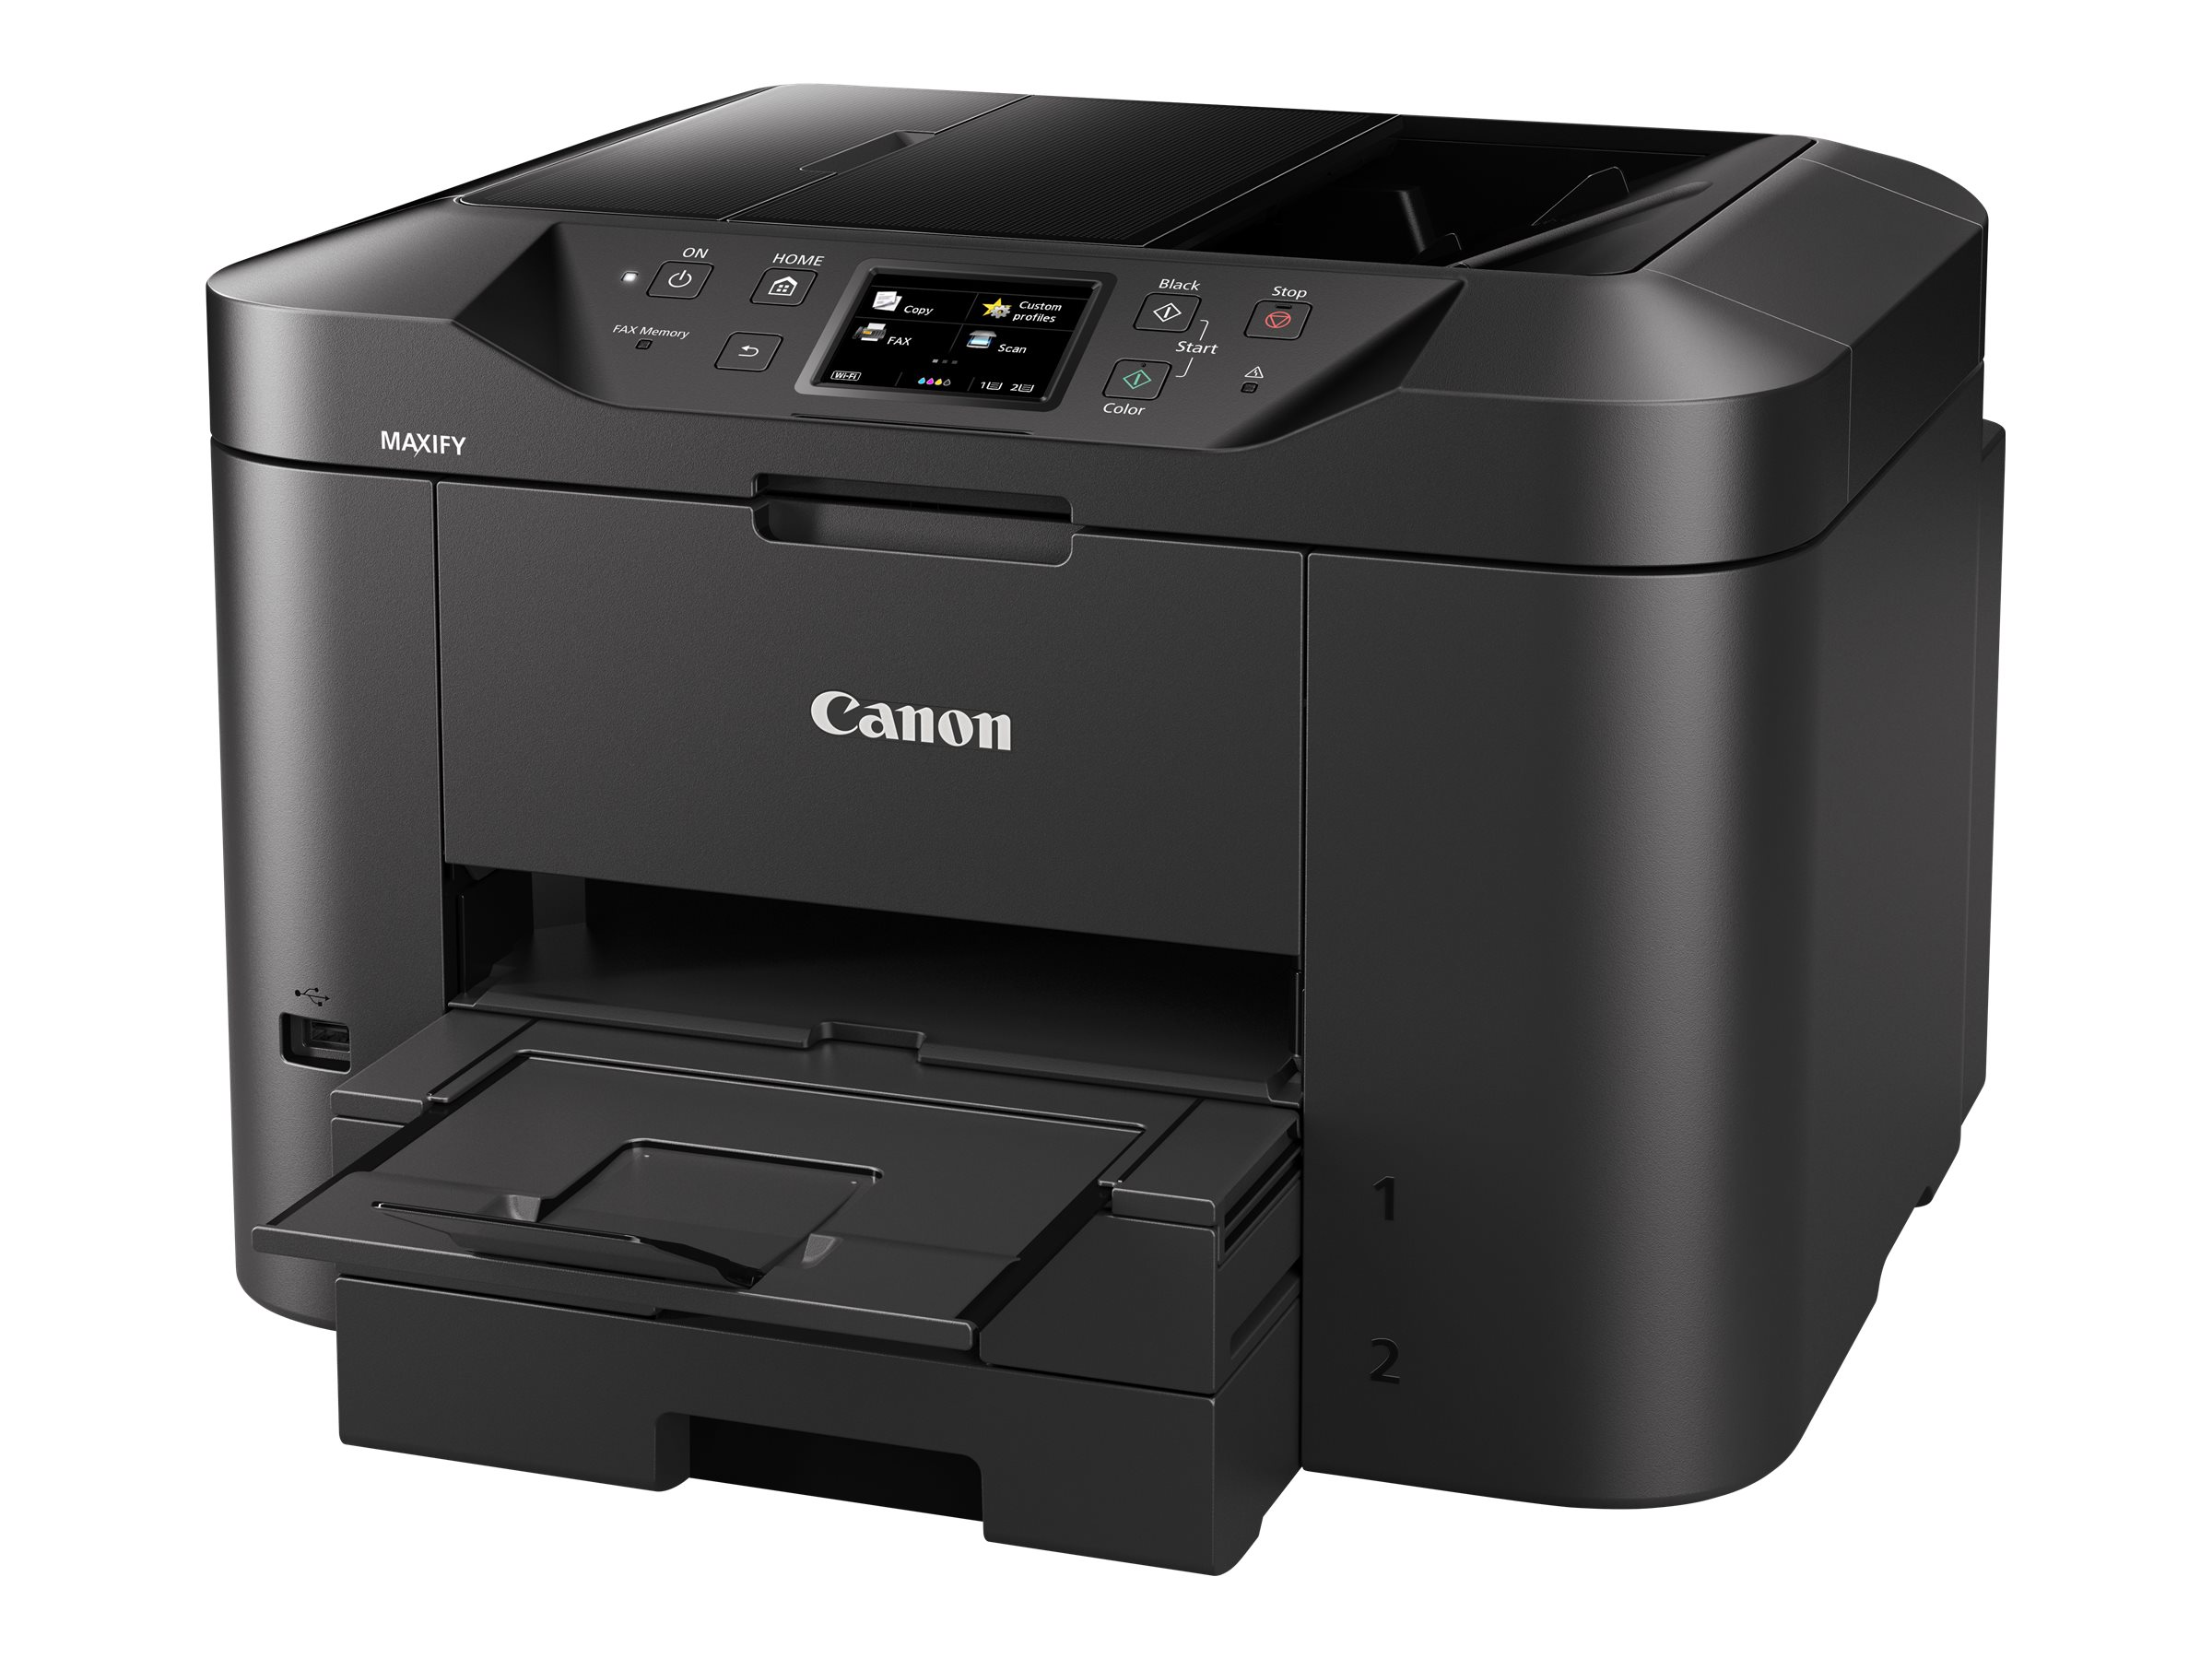 Canon MAXIFY MB2720 Wireless Home Office All-In-One Printer, 0958C002